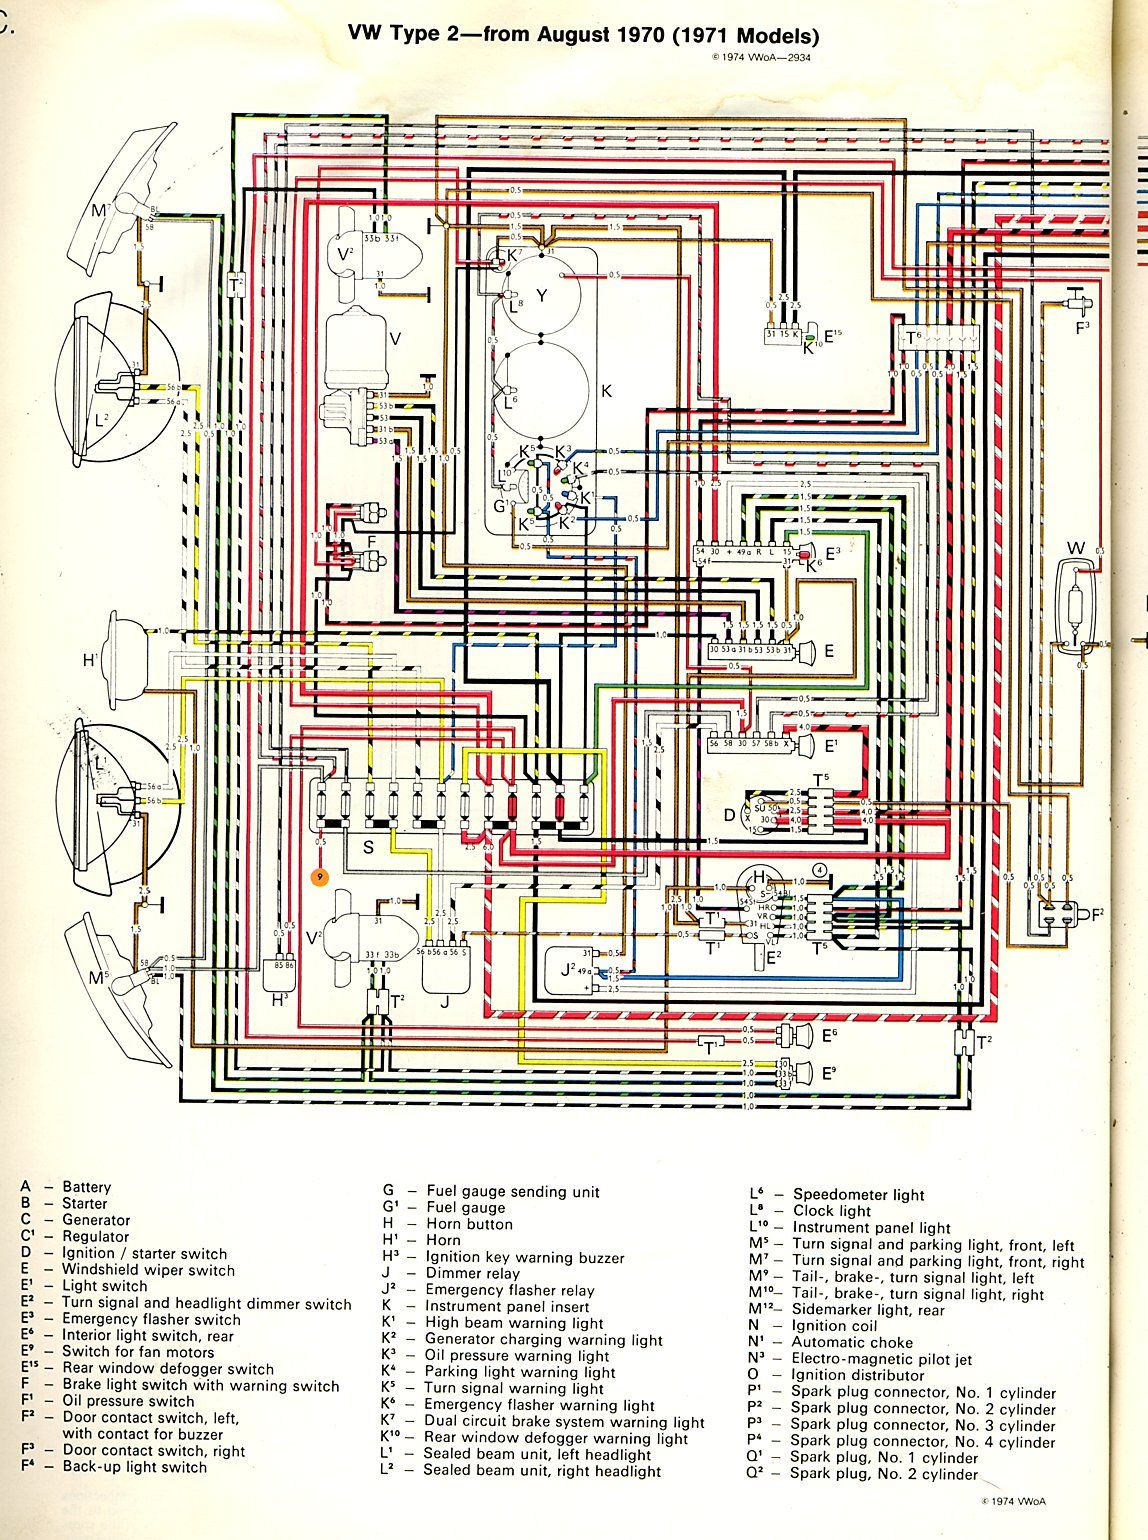 71 Ford Dome Light Wiring Diagram Wiring Diagram Ultimate1 Ultimate1 Musikami It